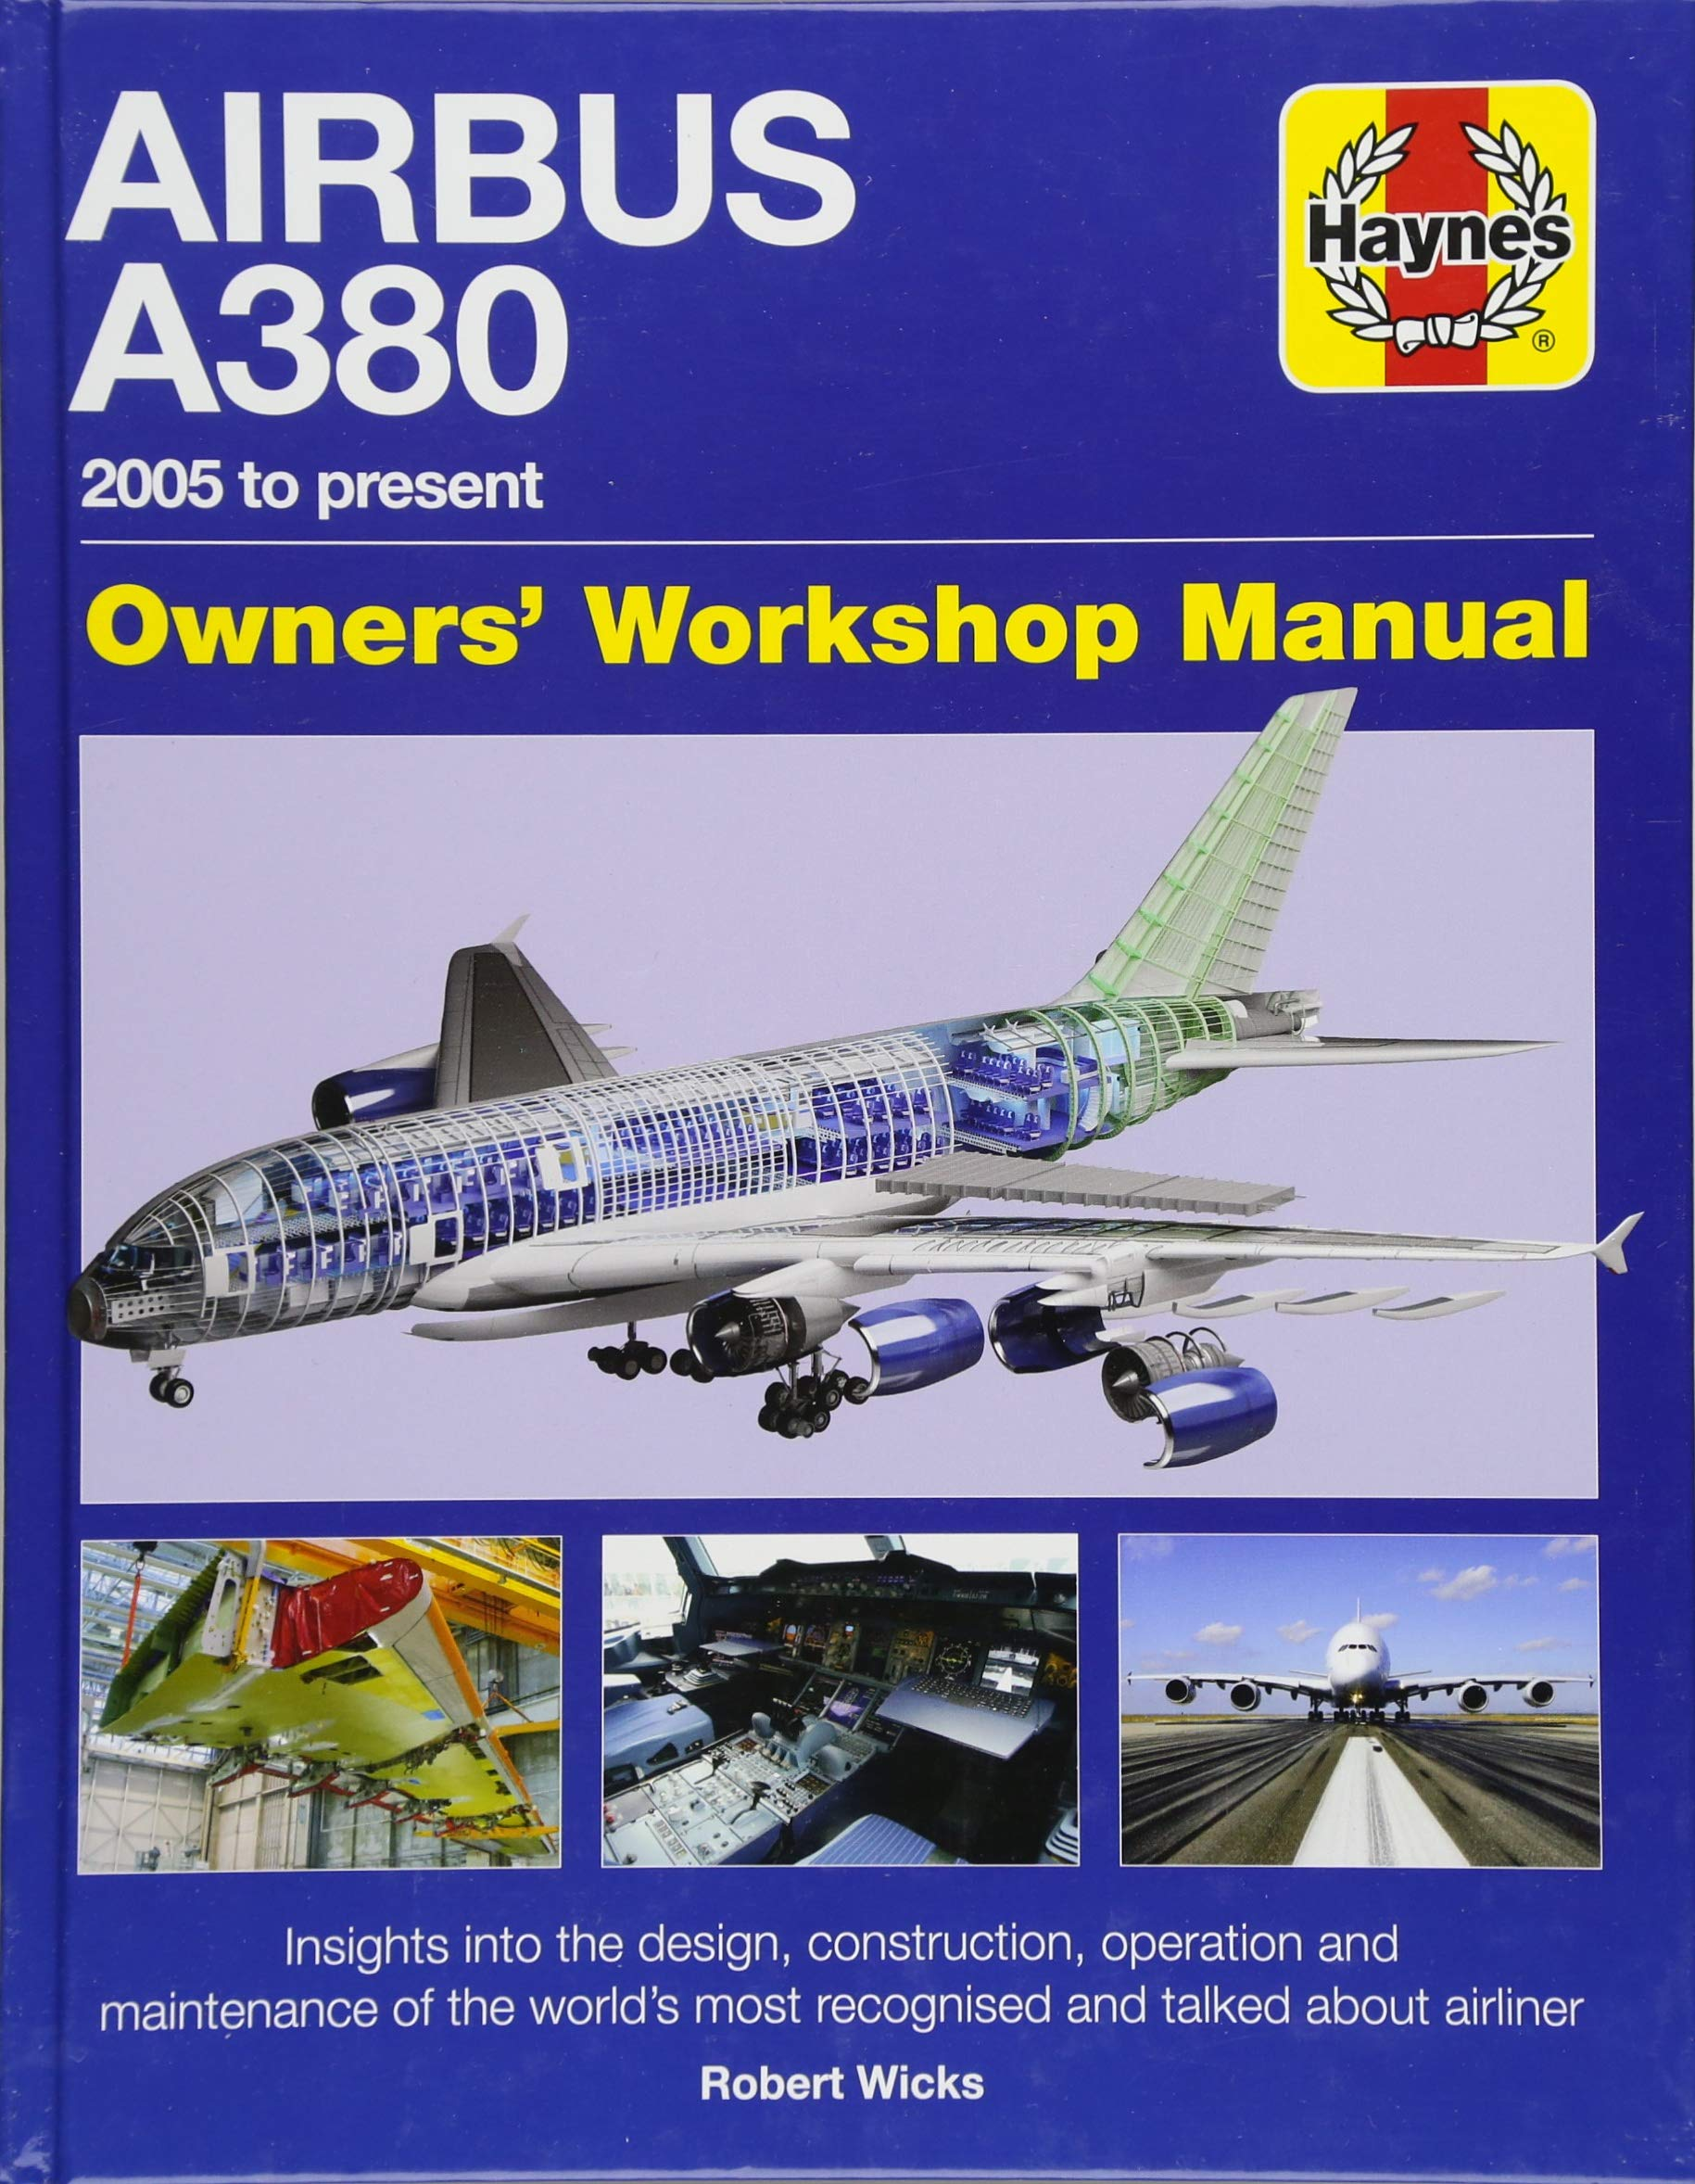 Airbus A380 Owner's Workshop Manual: 2005 to present: Robert Wicks:  9781785211089: Amazon.com: Books